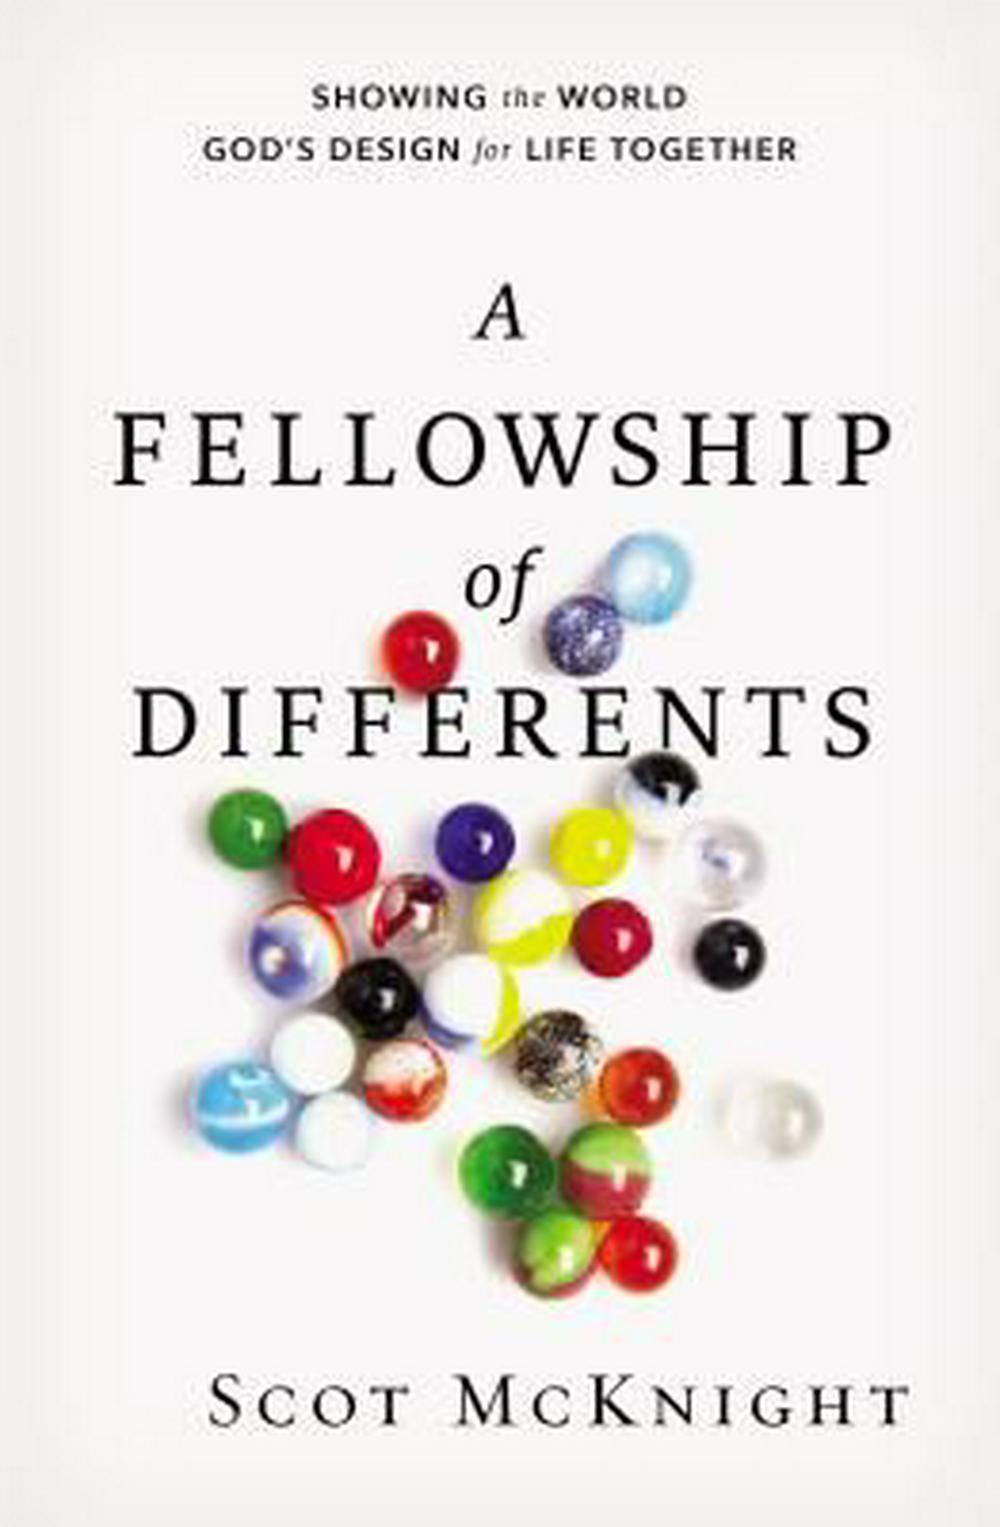 A Fellowship of Differents: Showing the World God's Design for Life Together by Scot McKnight, ISBN: 9780310531470